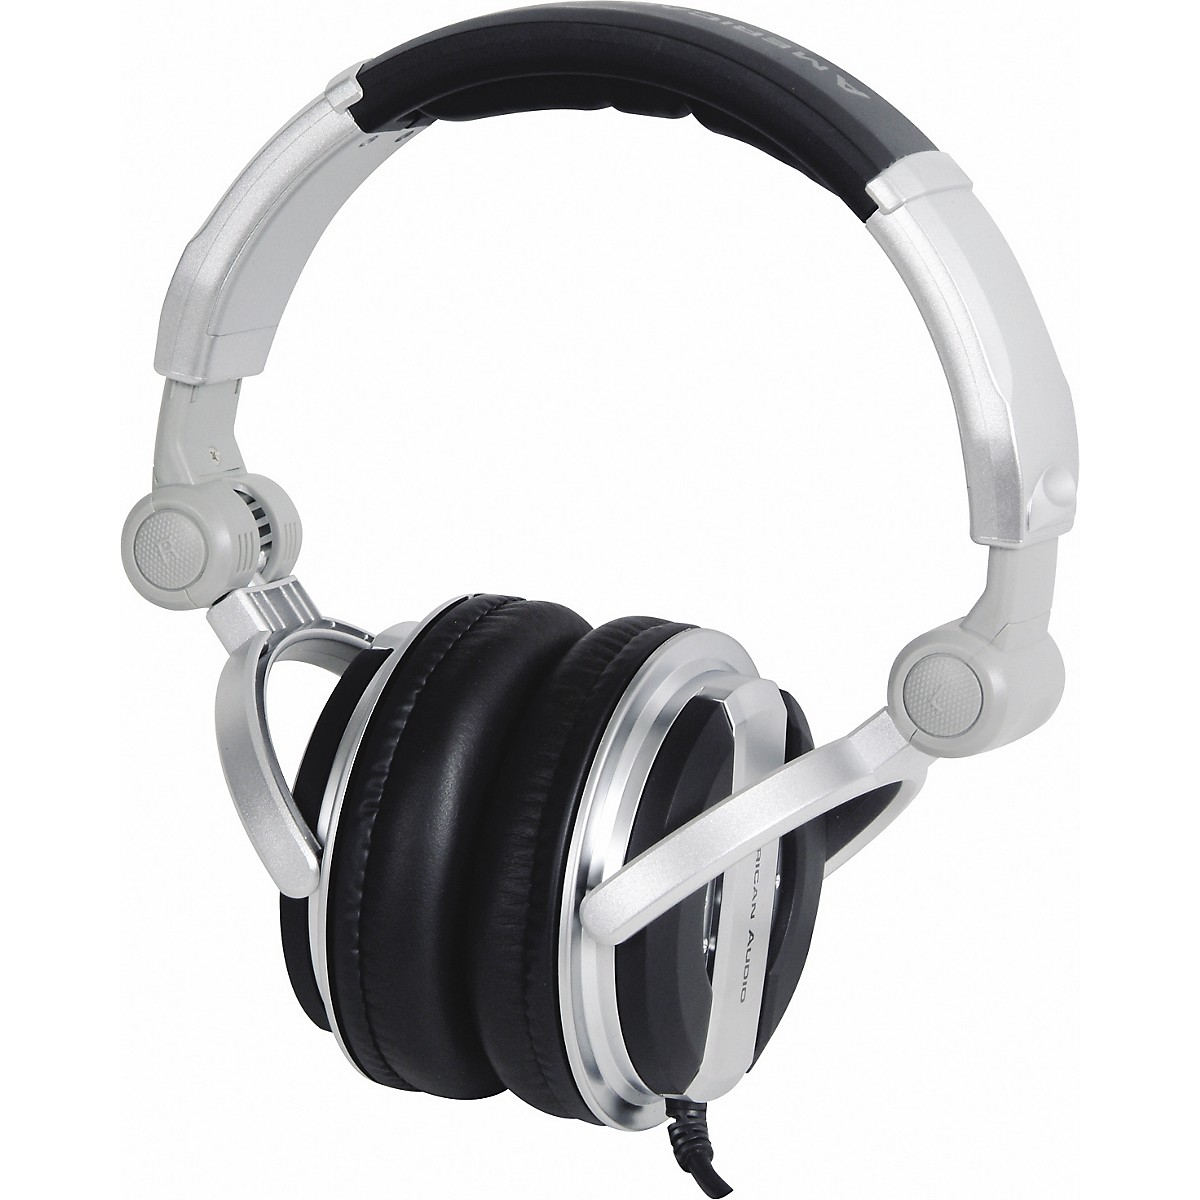 American Audio HP 700 Professional High-Powered Headphones